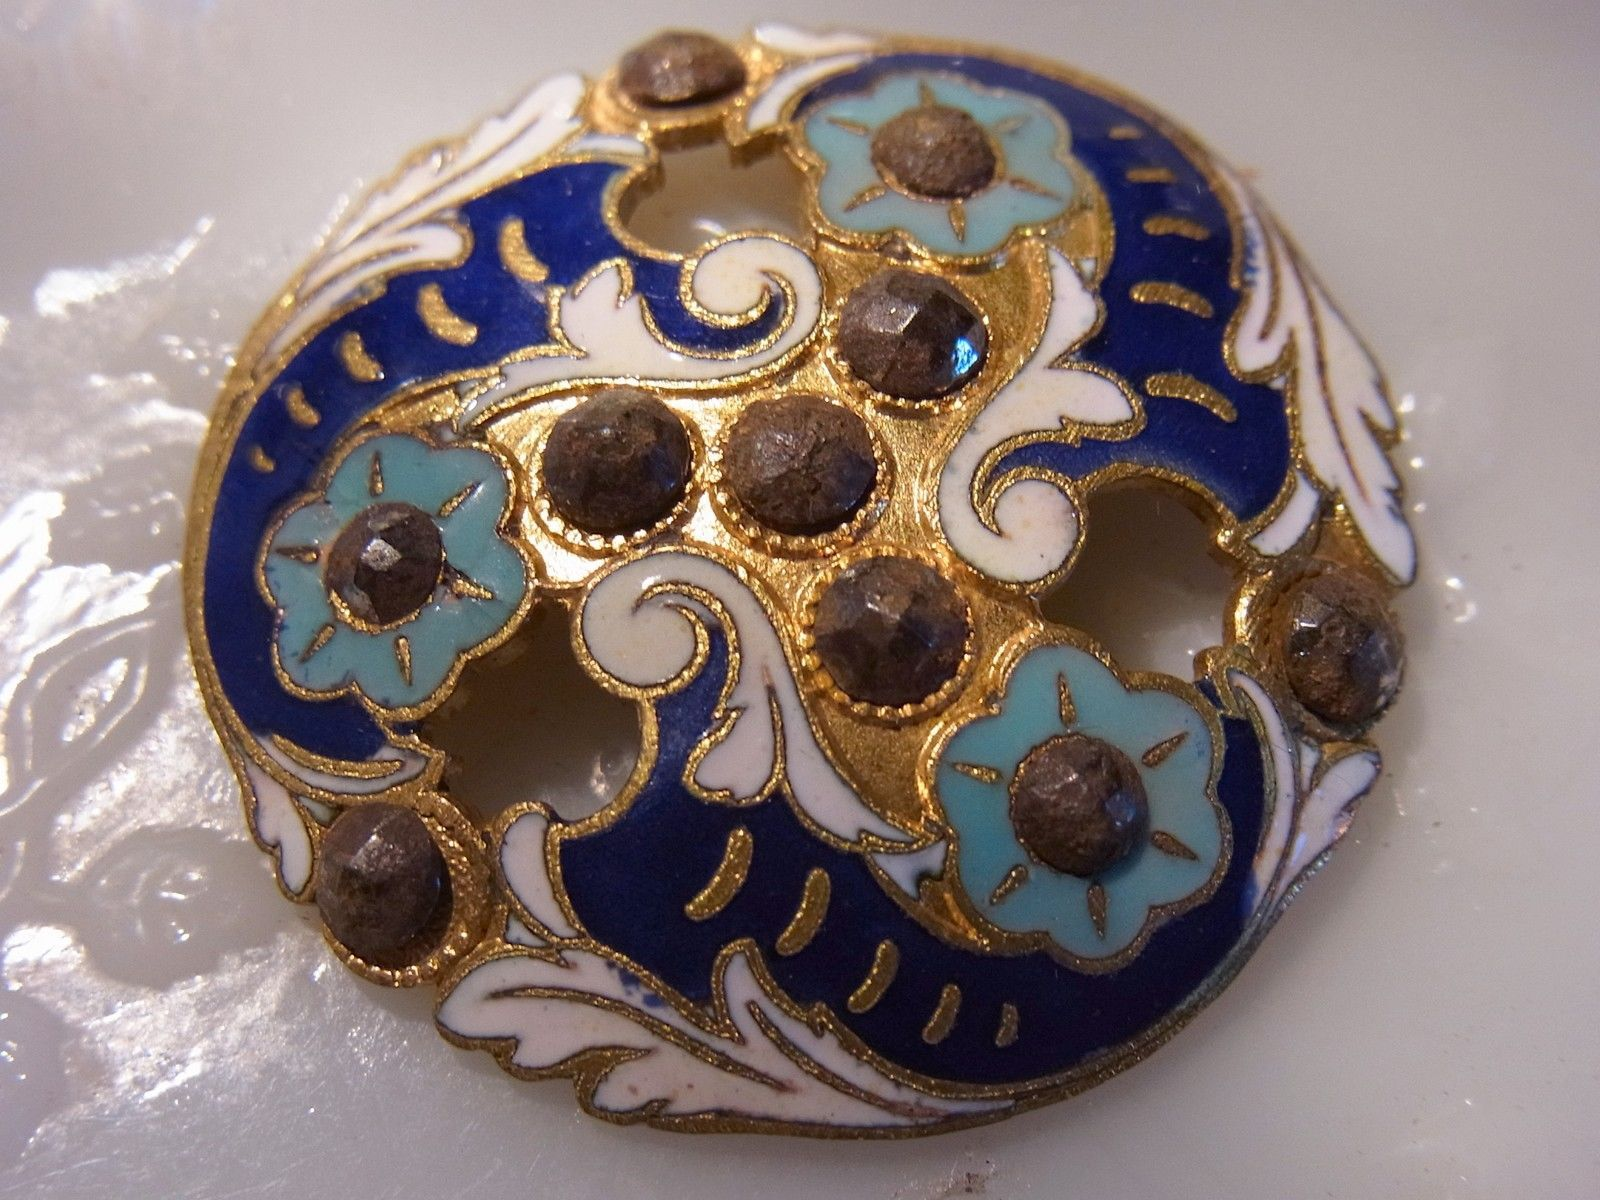 http://www.ebay.fr/itm/GRAND-BOUTON-ANCIEN-Emaille-Ajoure-Pointe-dAcier-Decor-Floral-/291385201345?pt=FR_YO_Collections_Boutons